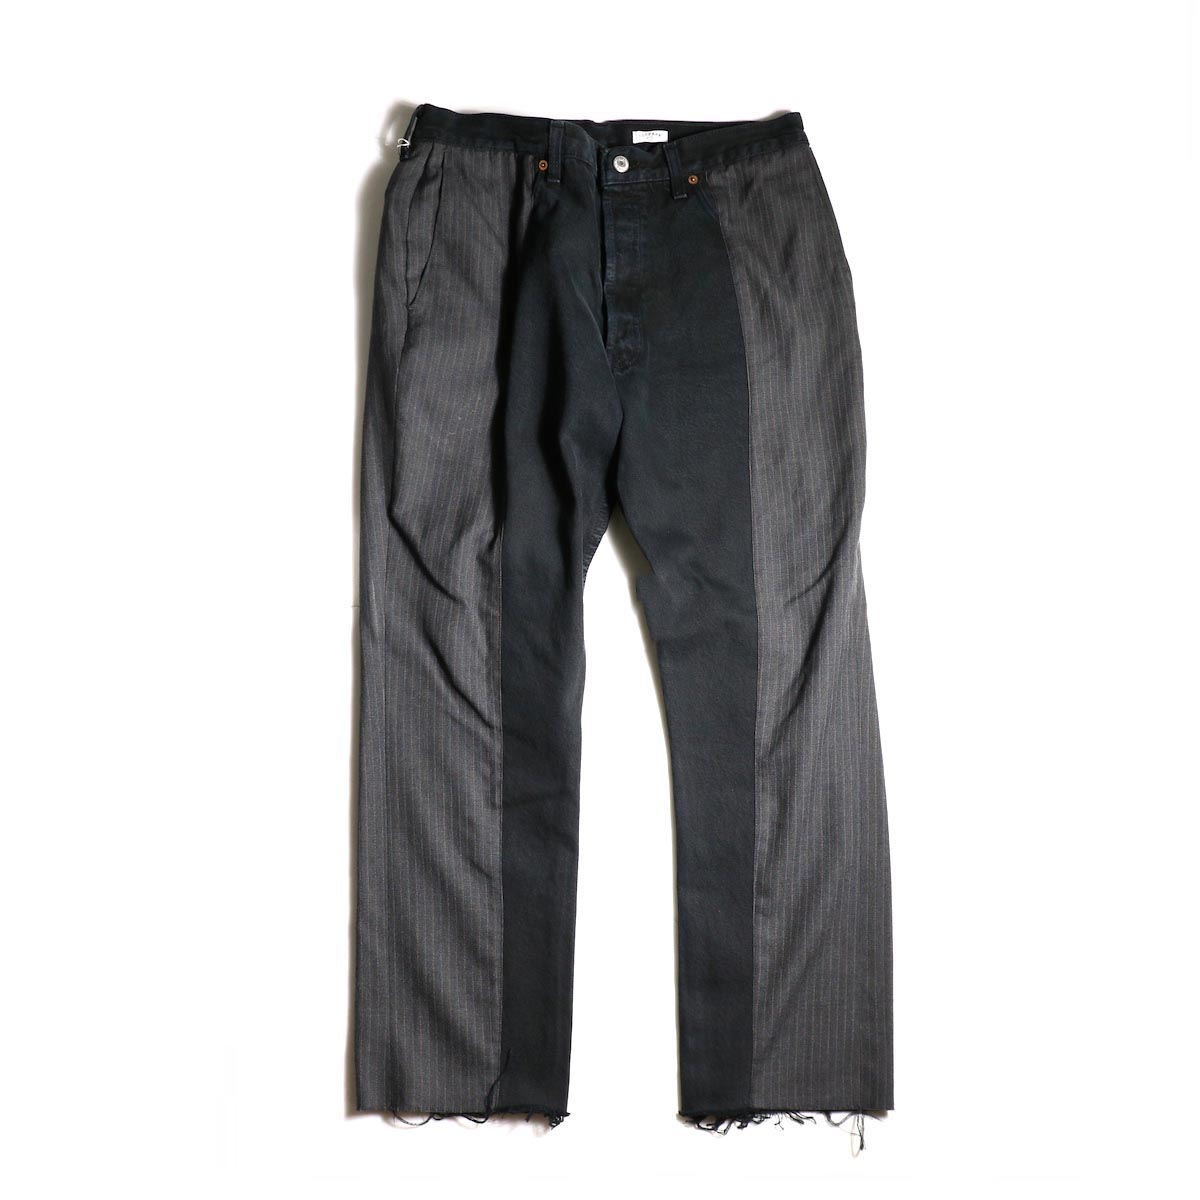 OLD PARK / Docking Jeans Black (Lsize)